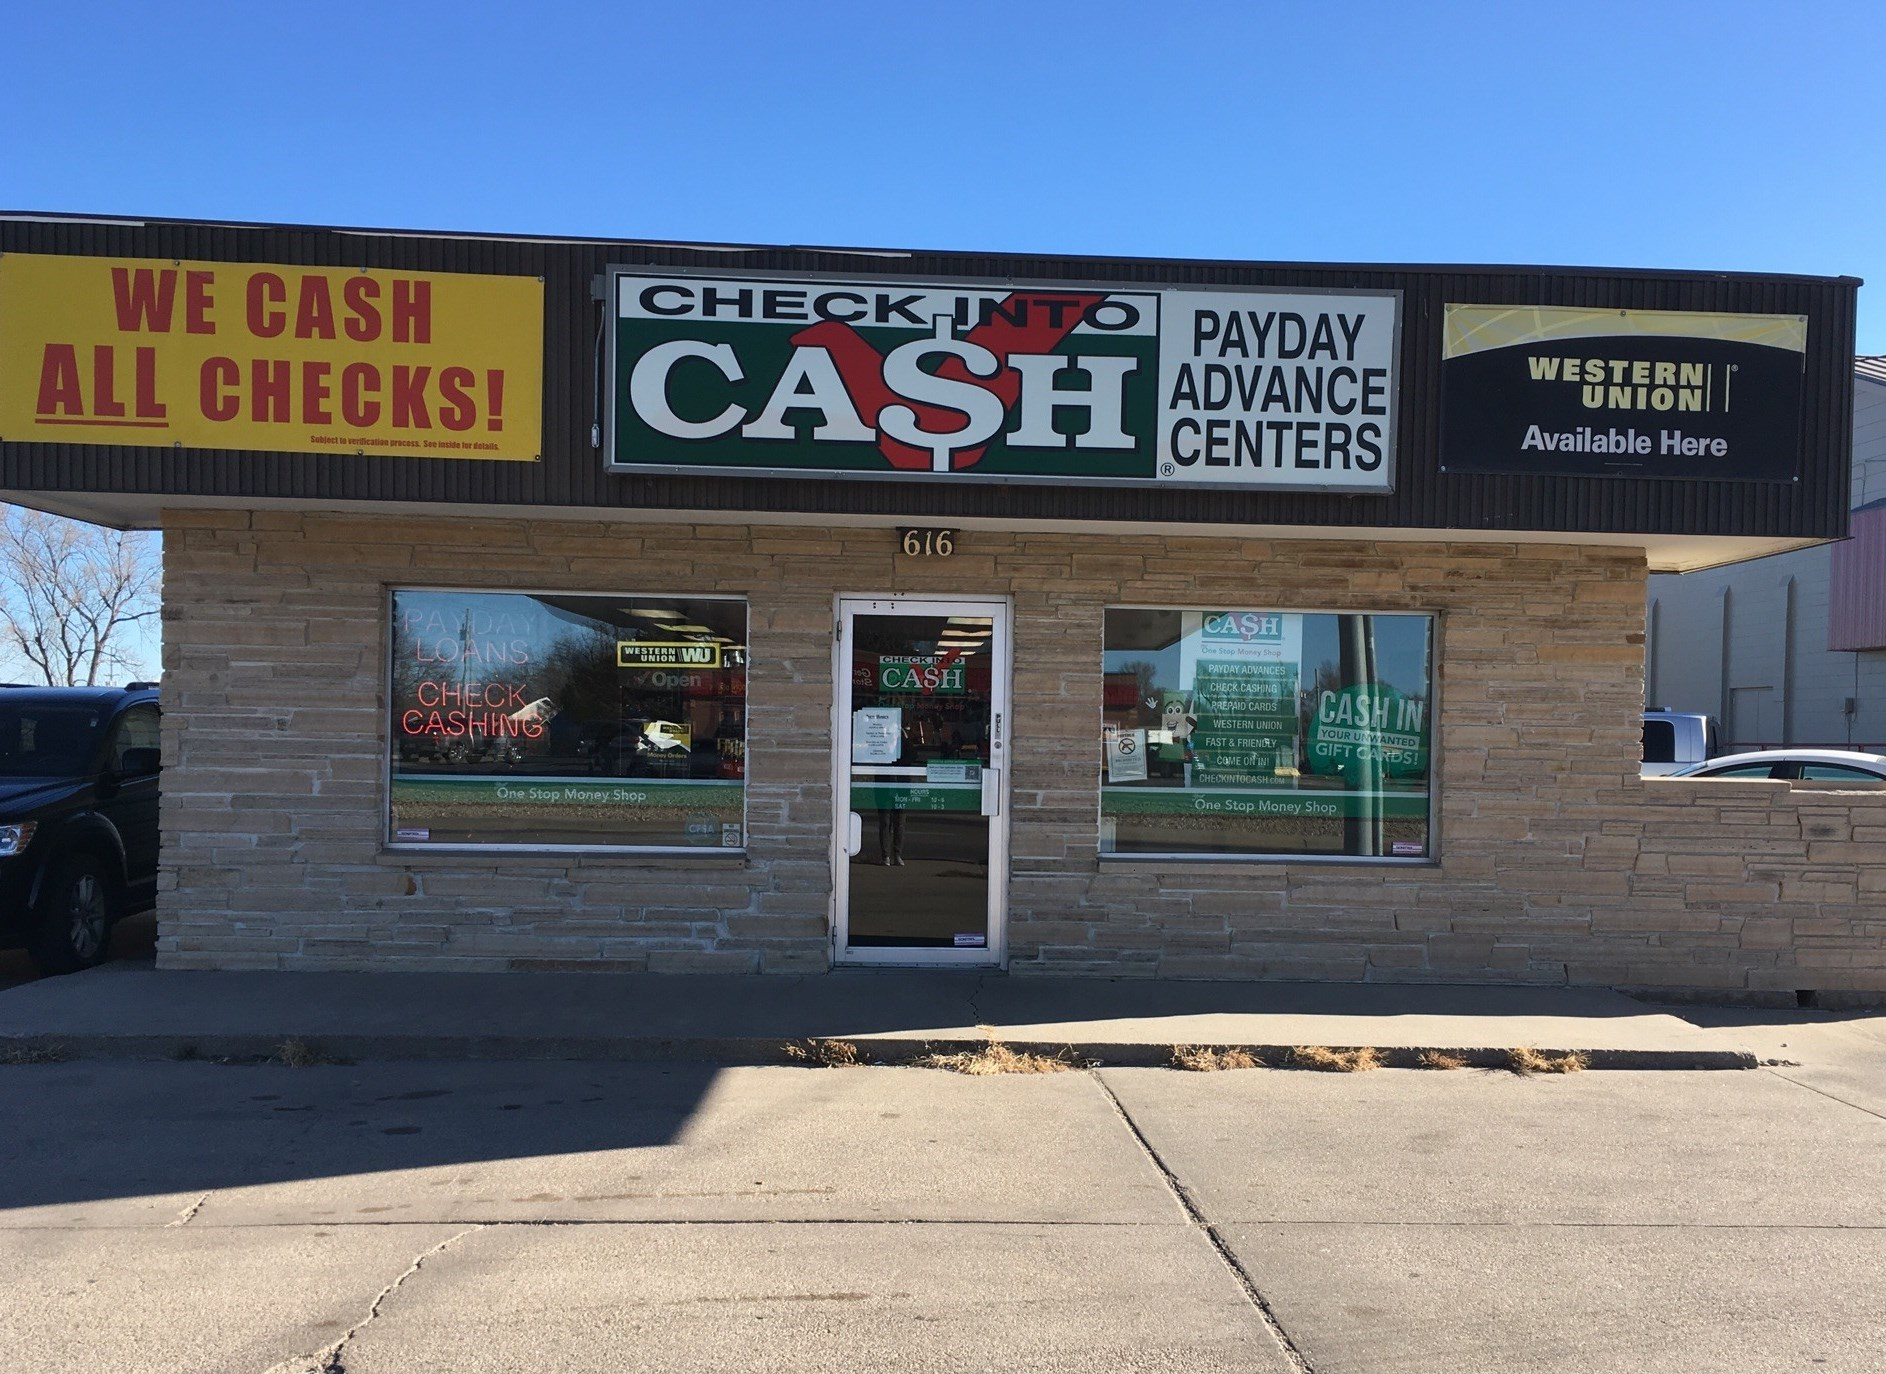 Monroeville payday loans image 6